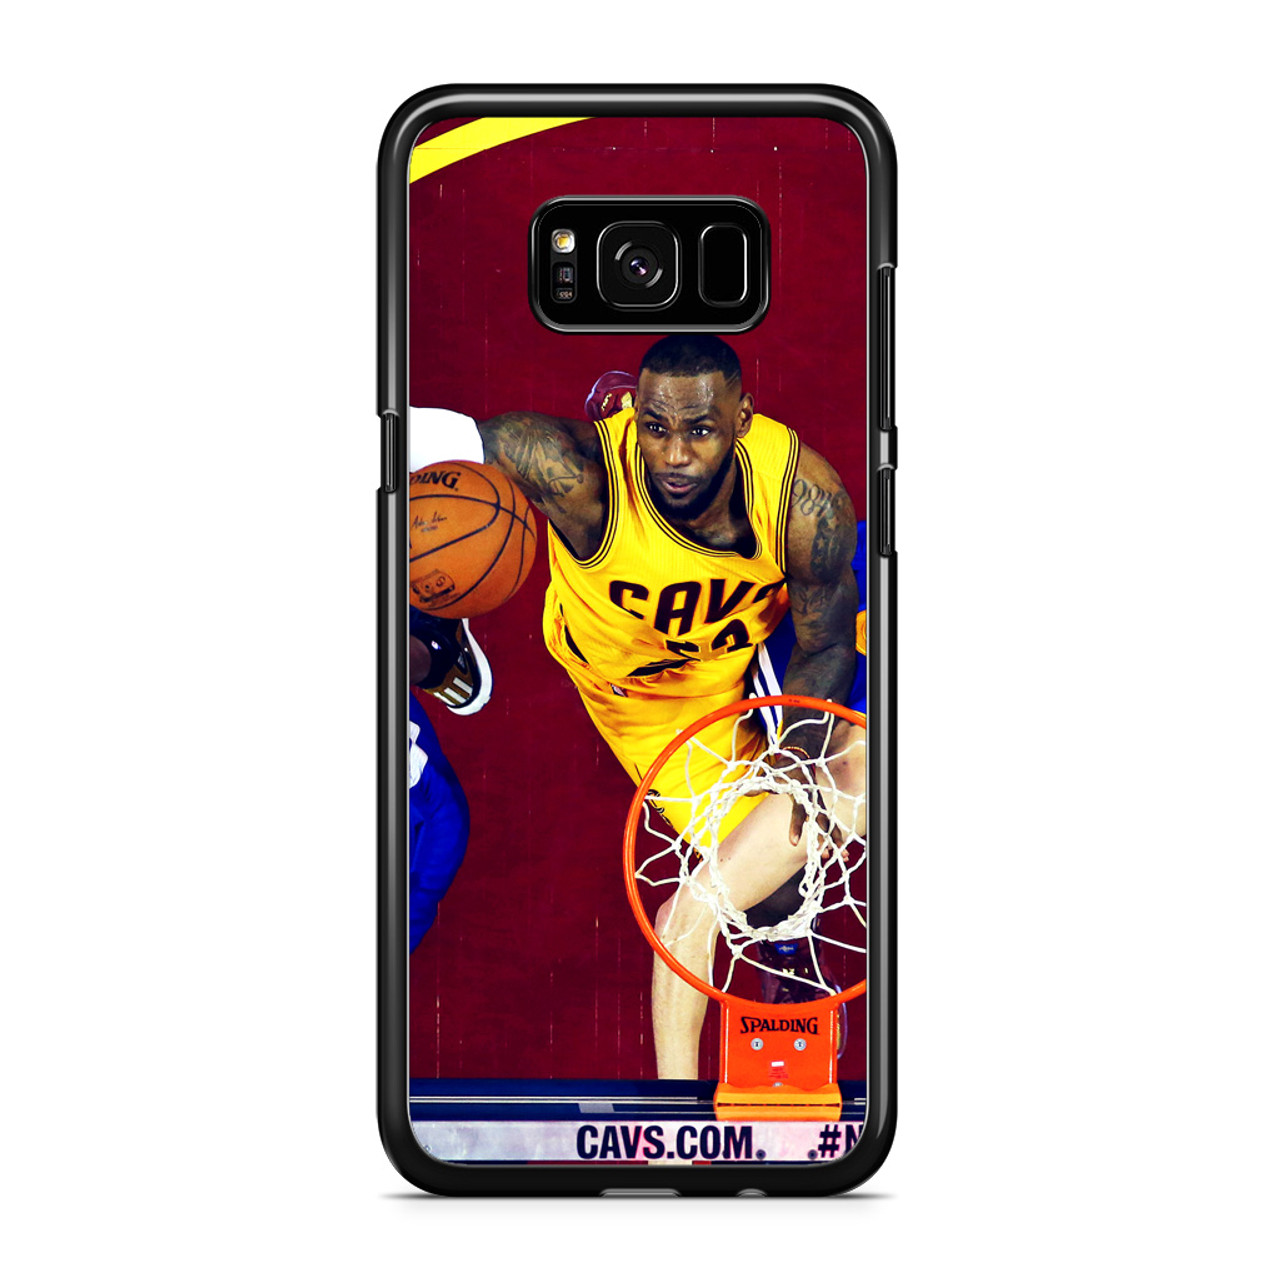 finest selection ab379 14b1f Lebron James Nba Basketball Rebound Samsung Galaxy S8 Case